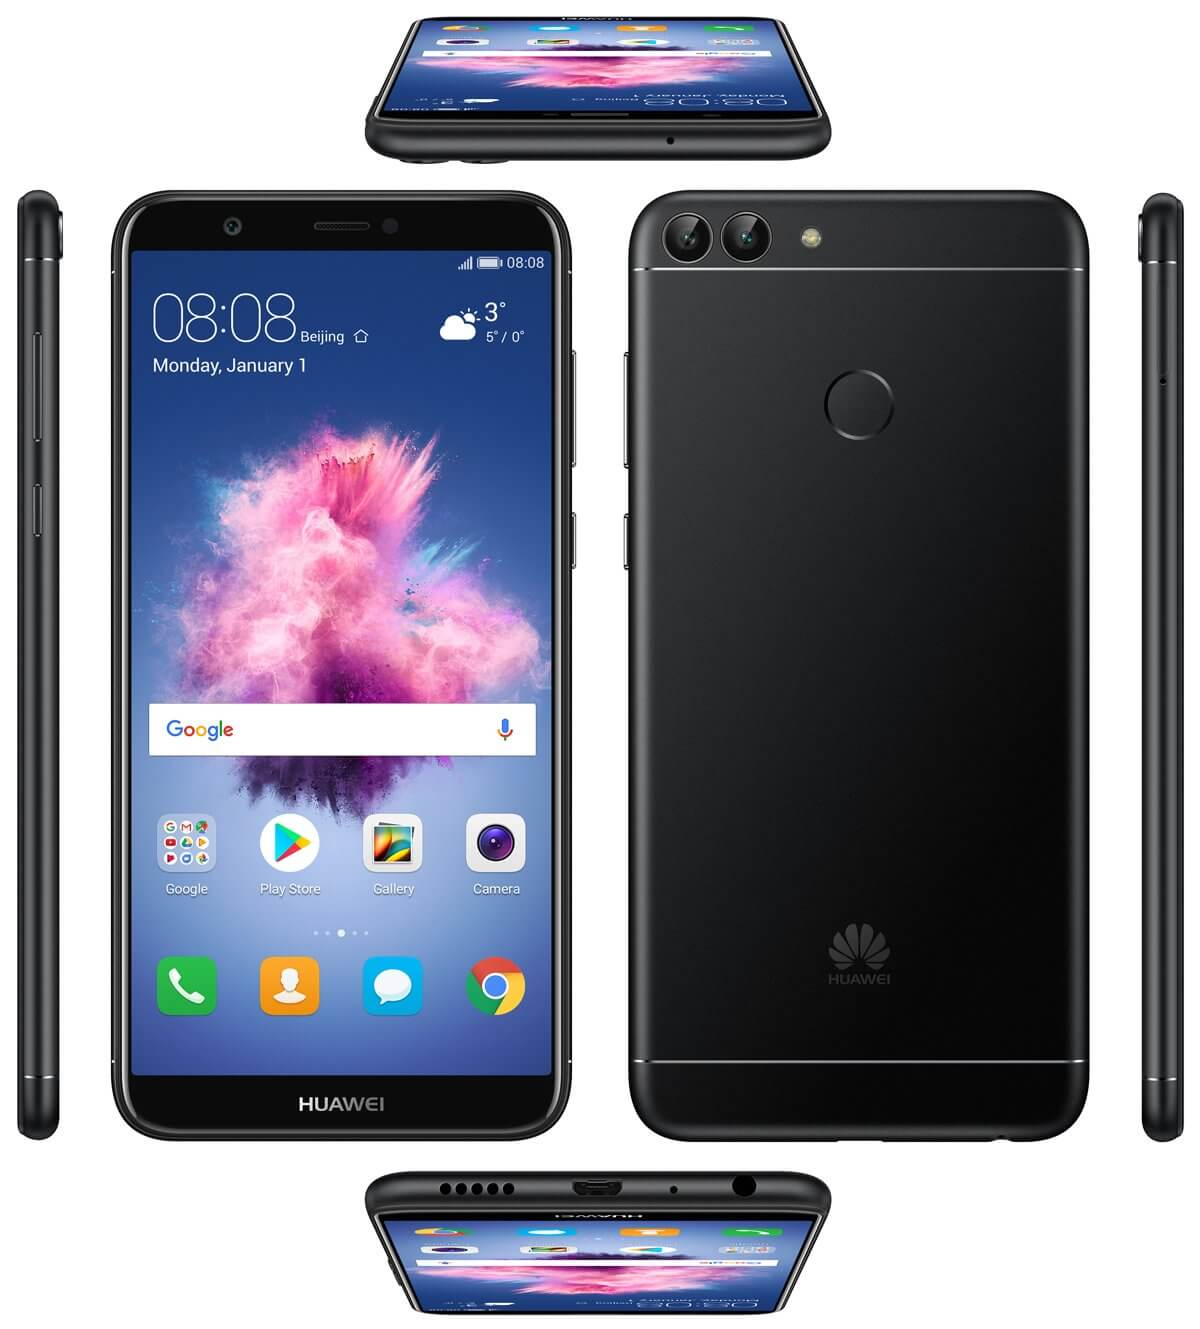 Huawei PSmart Android Smartphone